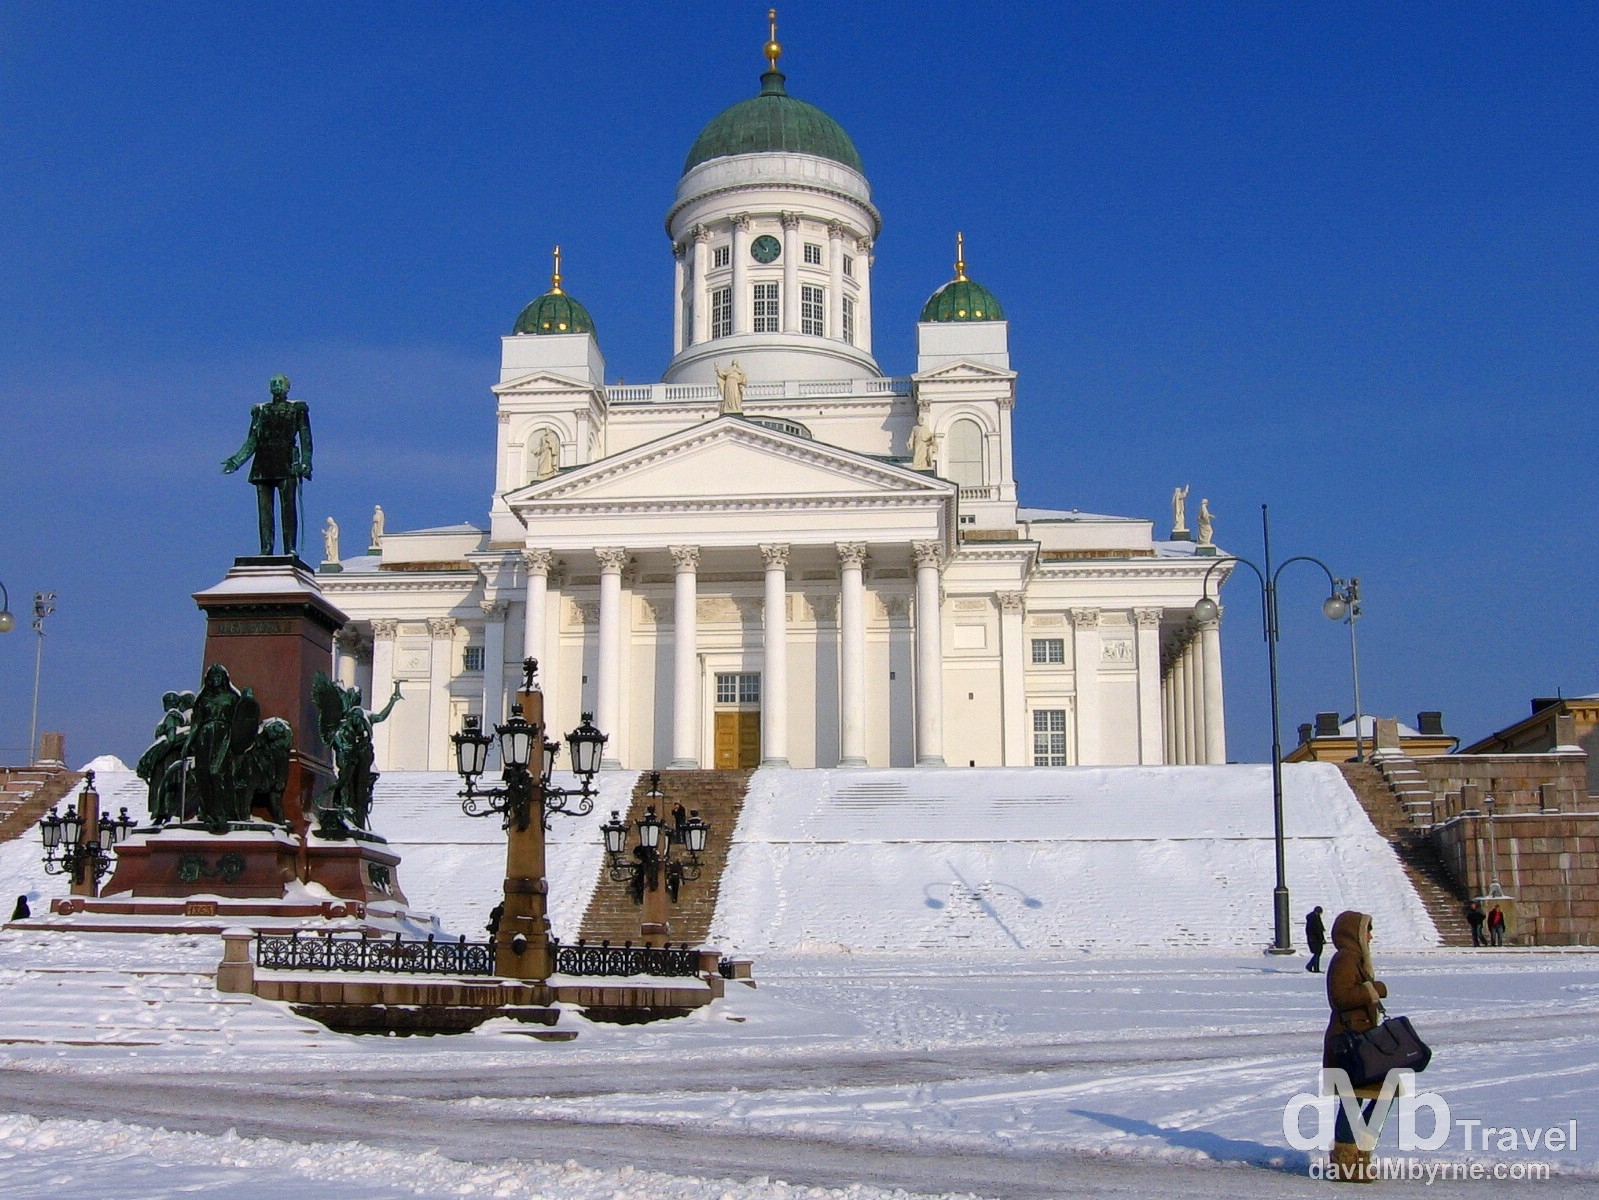 Helsinki Cathedral overlooking Senate Square in Helsinki, Finland. March 1, 2006.